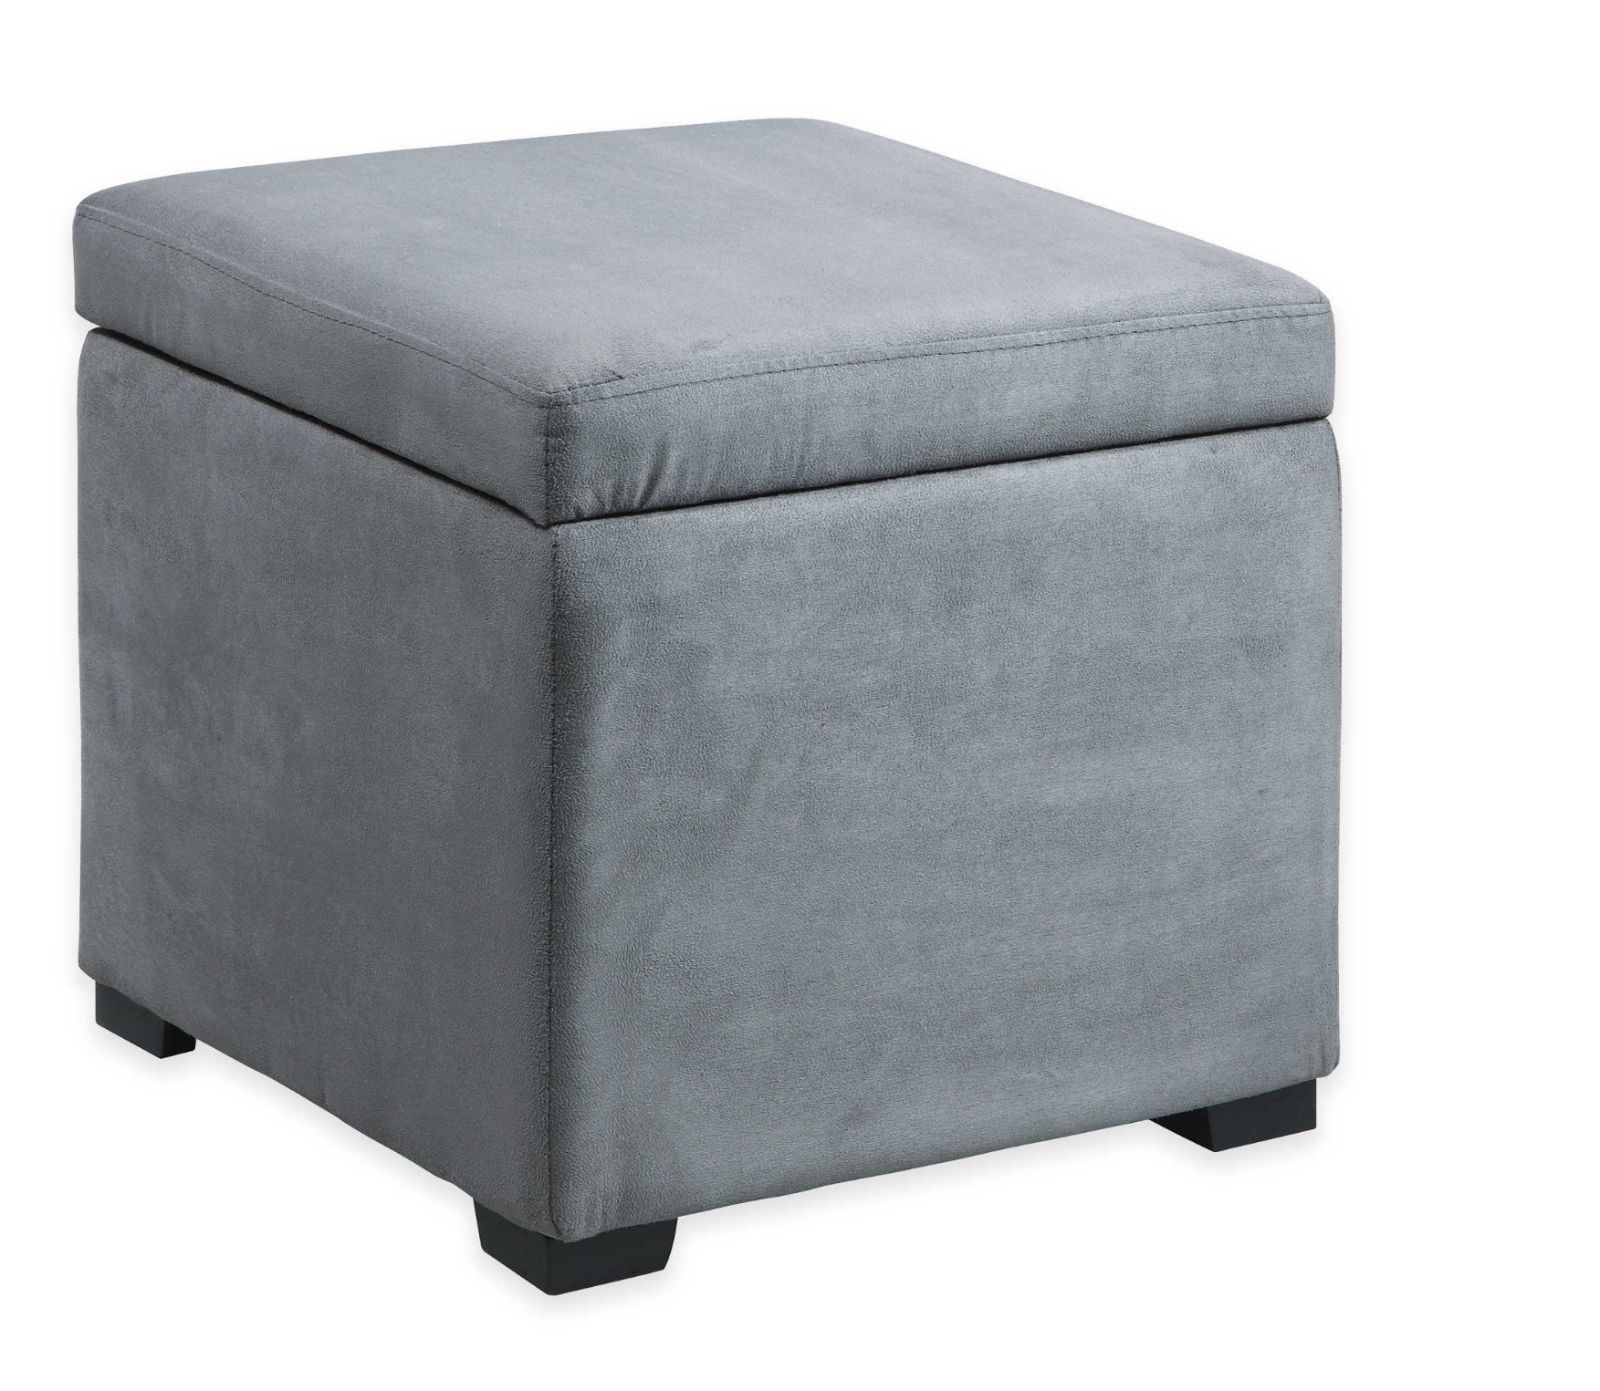 Grey Jewelry Storage Ottoman Foot Stool Pouffe Bench Footstool For Footstools And Pouffes With Storage (Image 4 of 15)